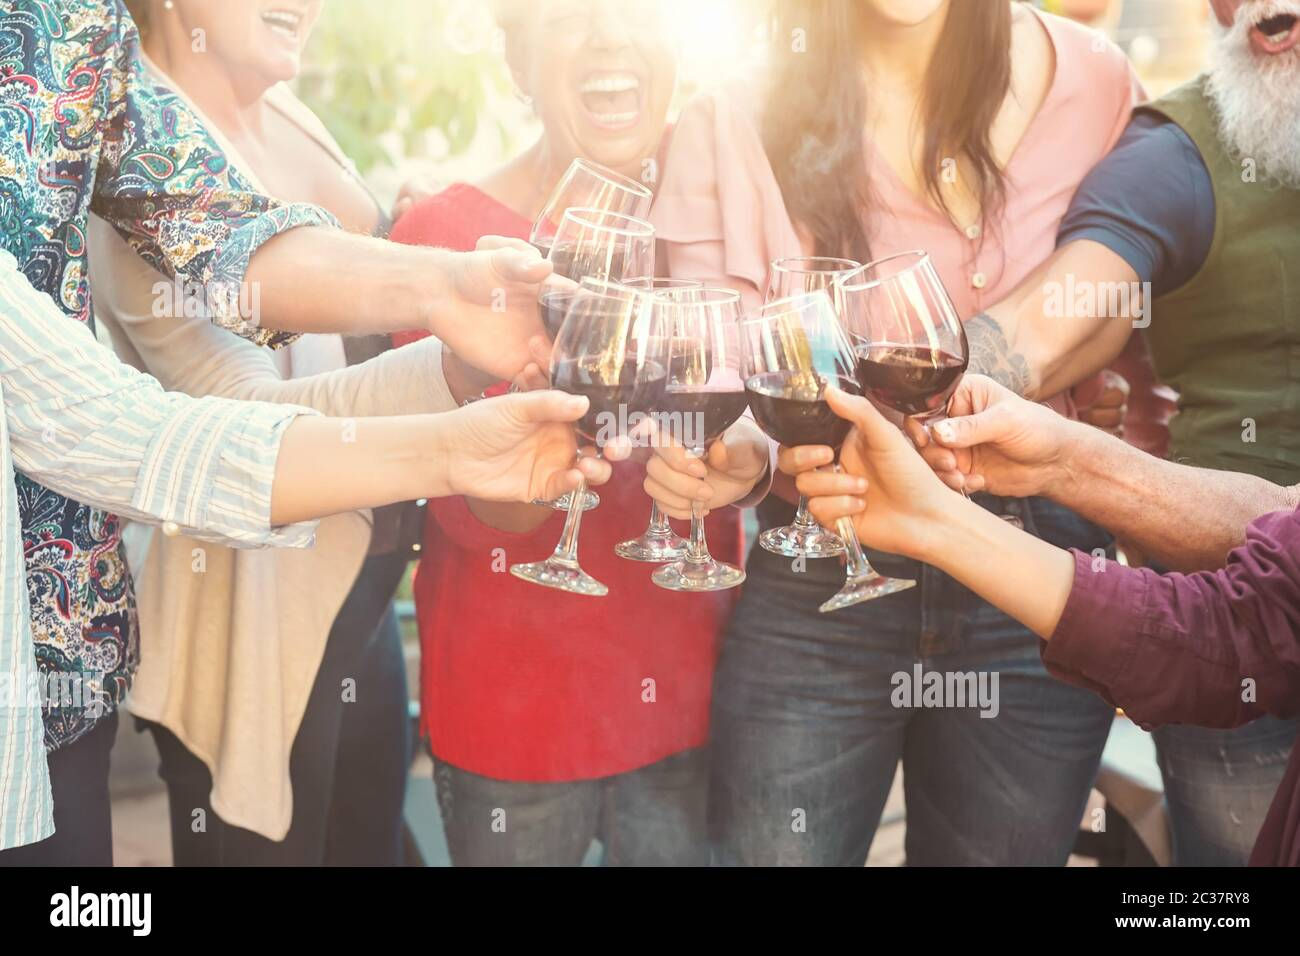 Happy family toasting with red wine glasses at dinner outdoor - People having fun cheering and drinking while dining together Stock Photo